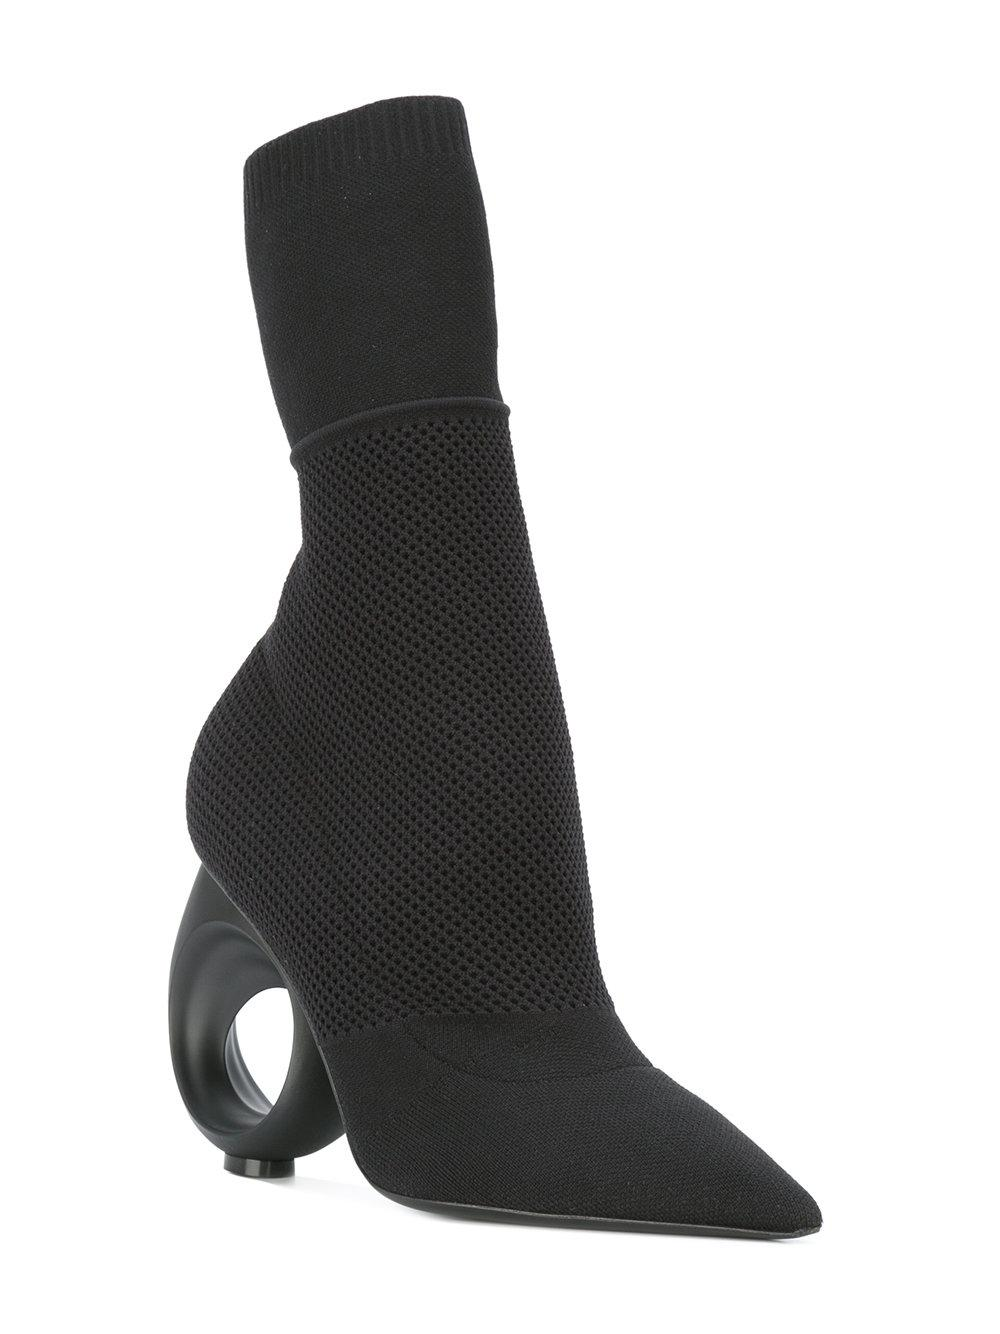 Burberry Leather Curved Heel Boots in Black